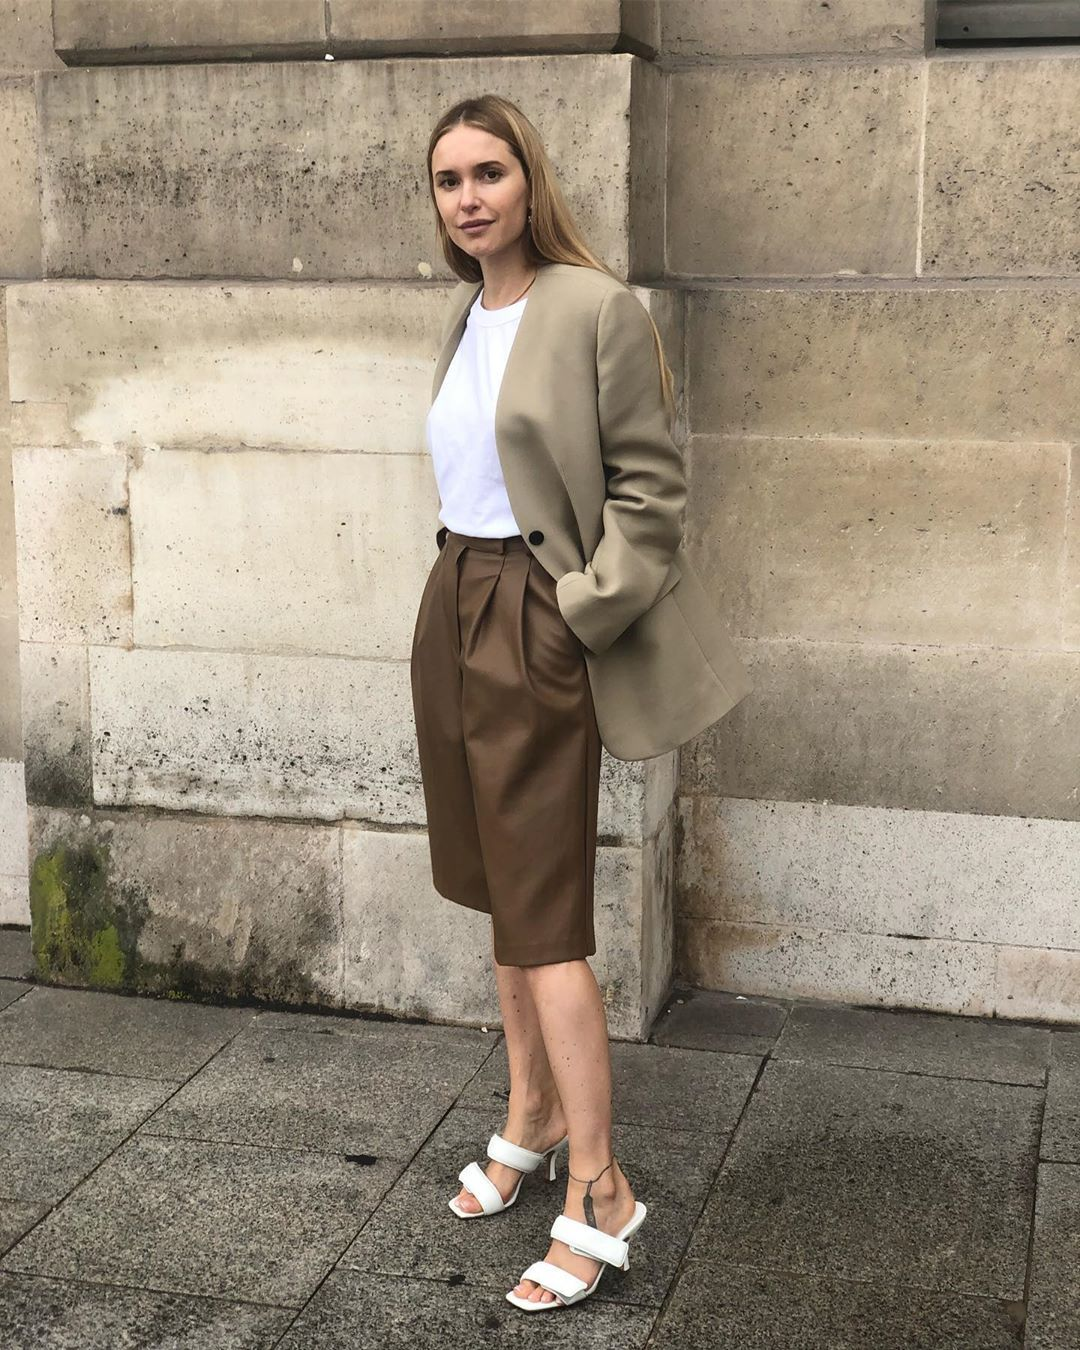 pernille-teisbaek-pleated-bermuda-shorts-fall-2019-outfit